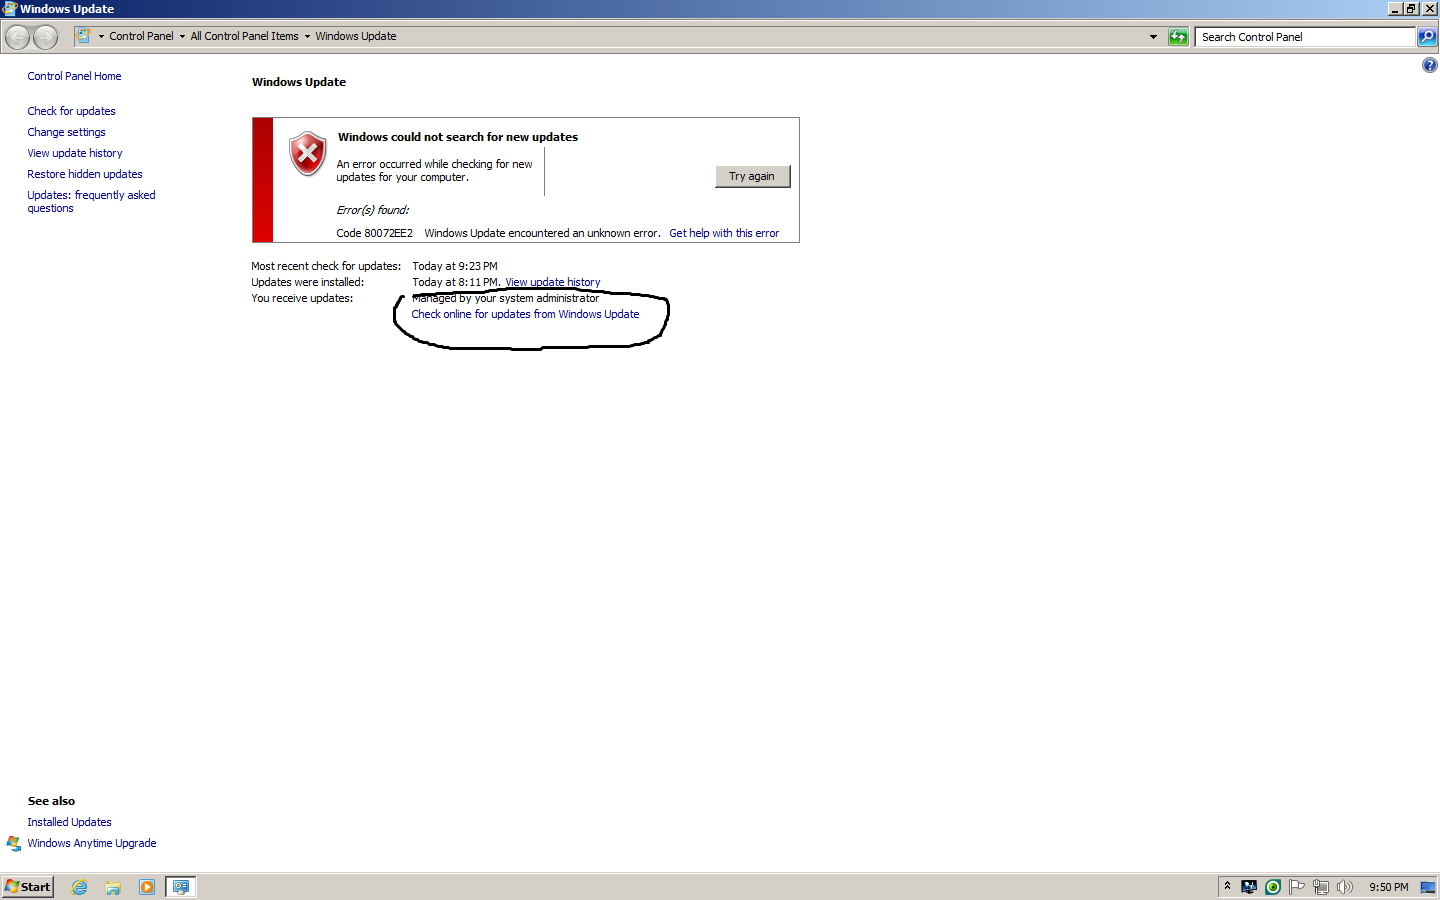 Windows Updates does not work on Win 7 Pro